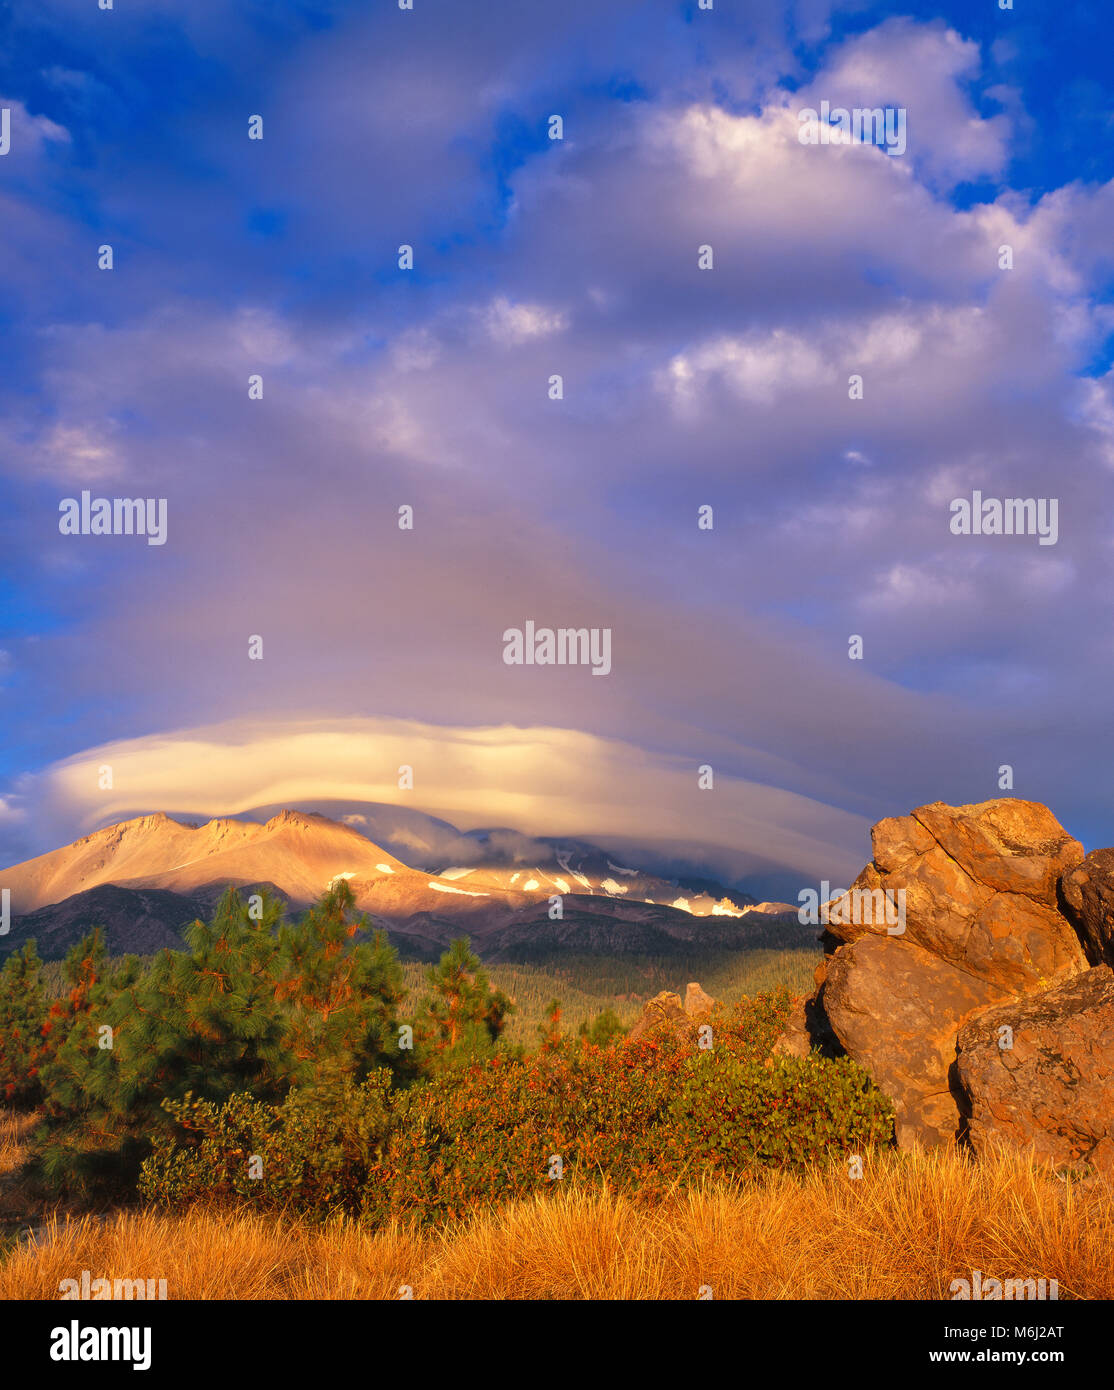 Nuage lenticulaire, Shastina, Mount Shasta, Californie, la Forêt Nationale de Shasta-Trinity Photo Stock